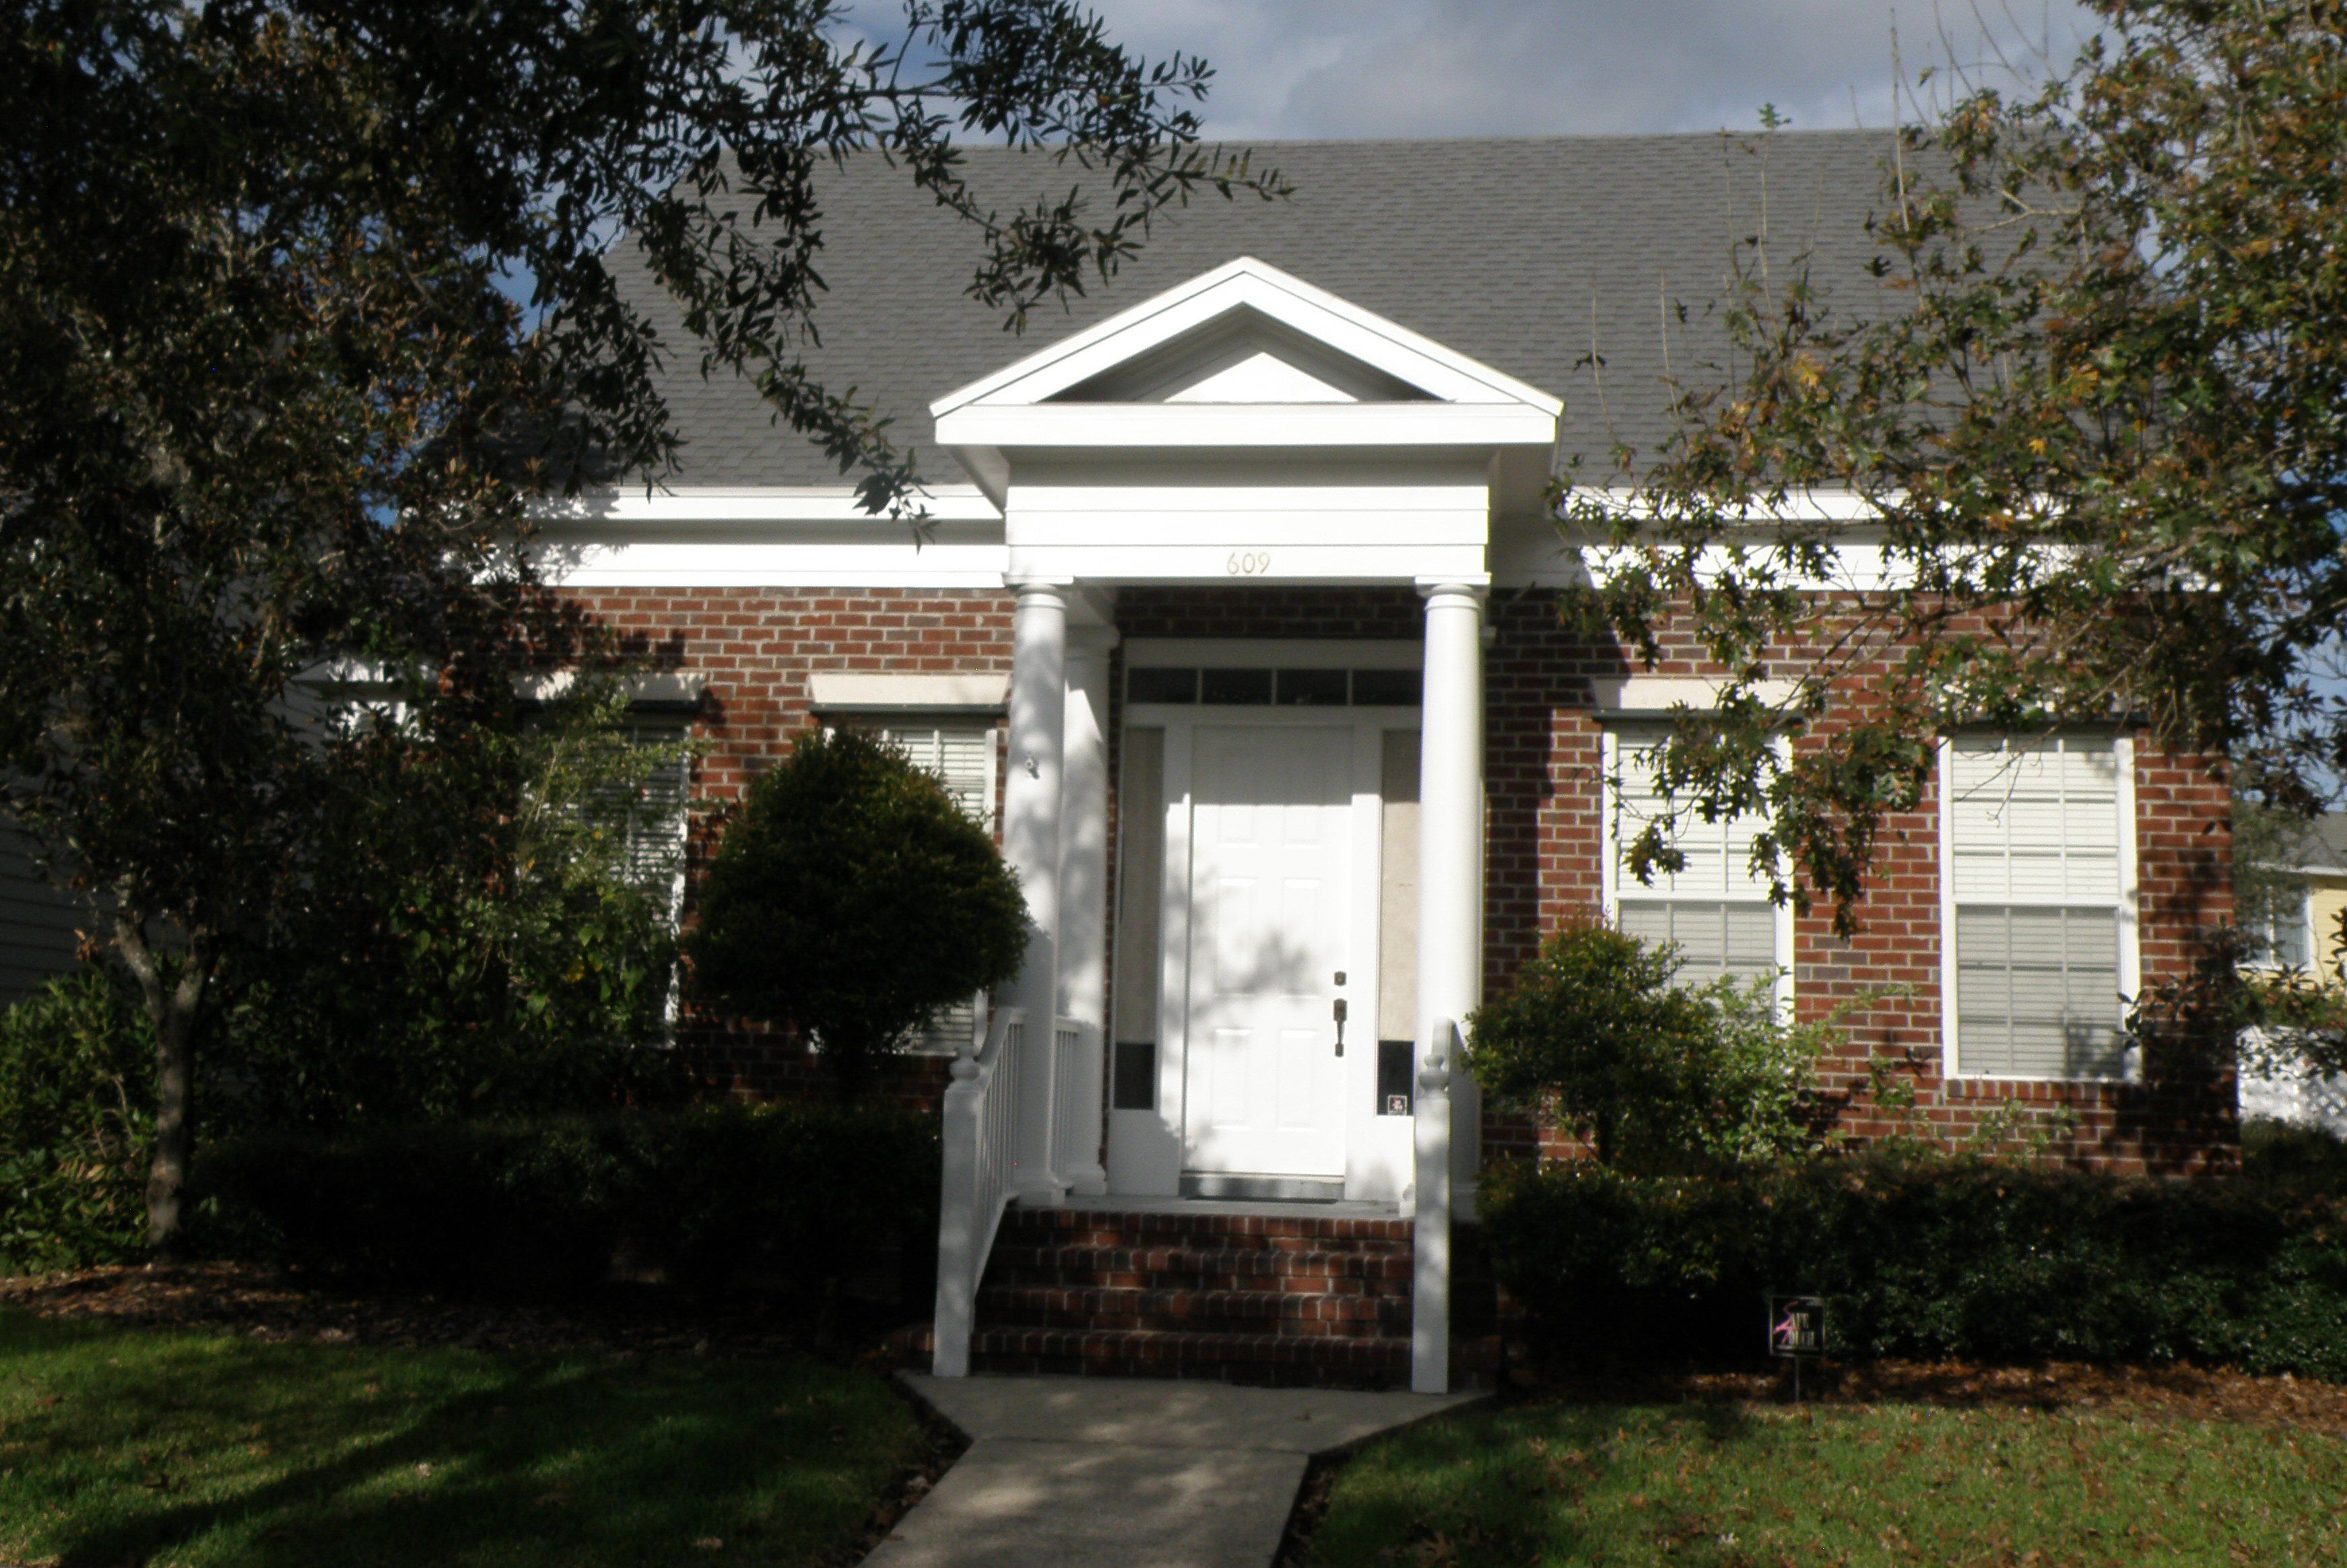 Small brick cottage with a narrow pediment front porch